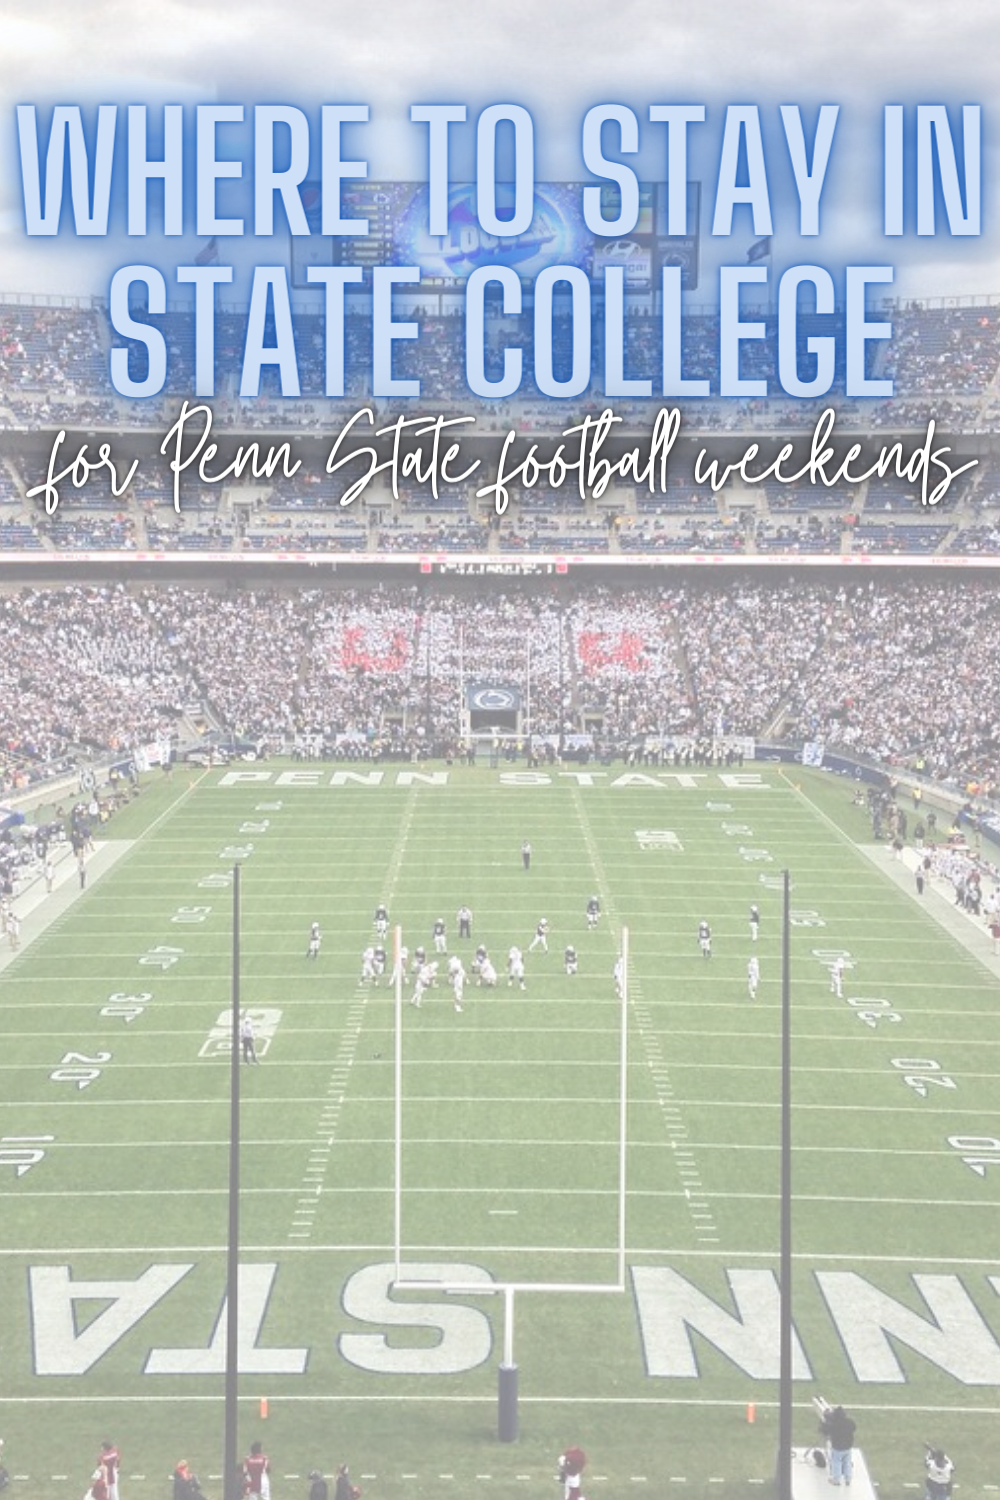 Where To Stay In State College, PA For Penn State Football Weekends